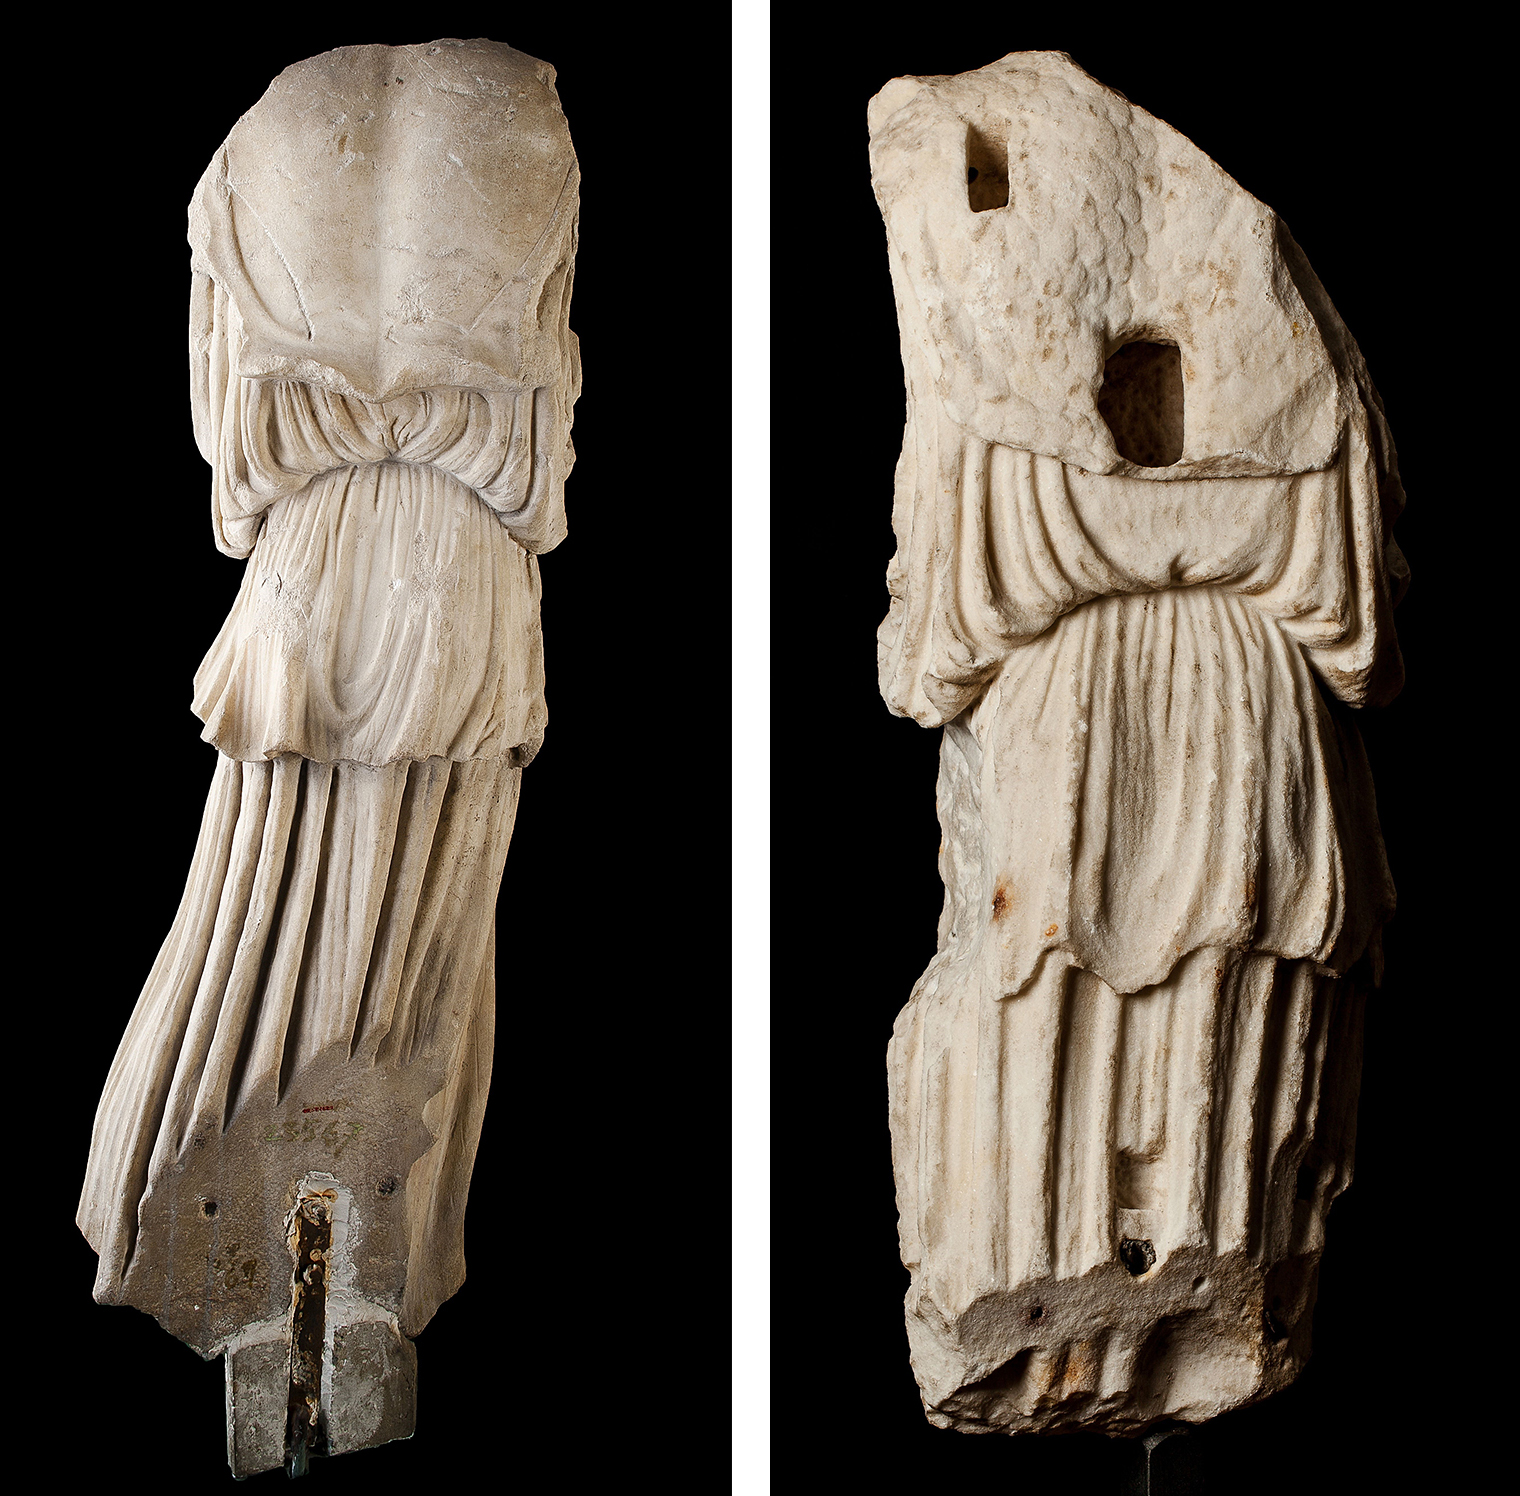 Figure 3a (left) and 3b (right): Back views of the Glencairn Minerva Victoria (left) and the Sorgente Athena Nike (right).